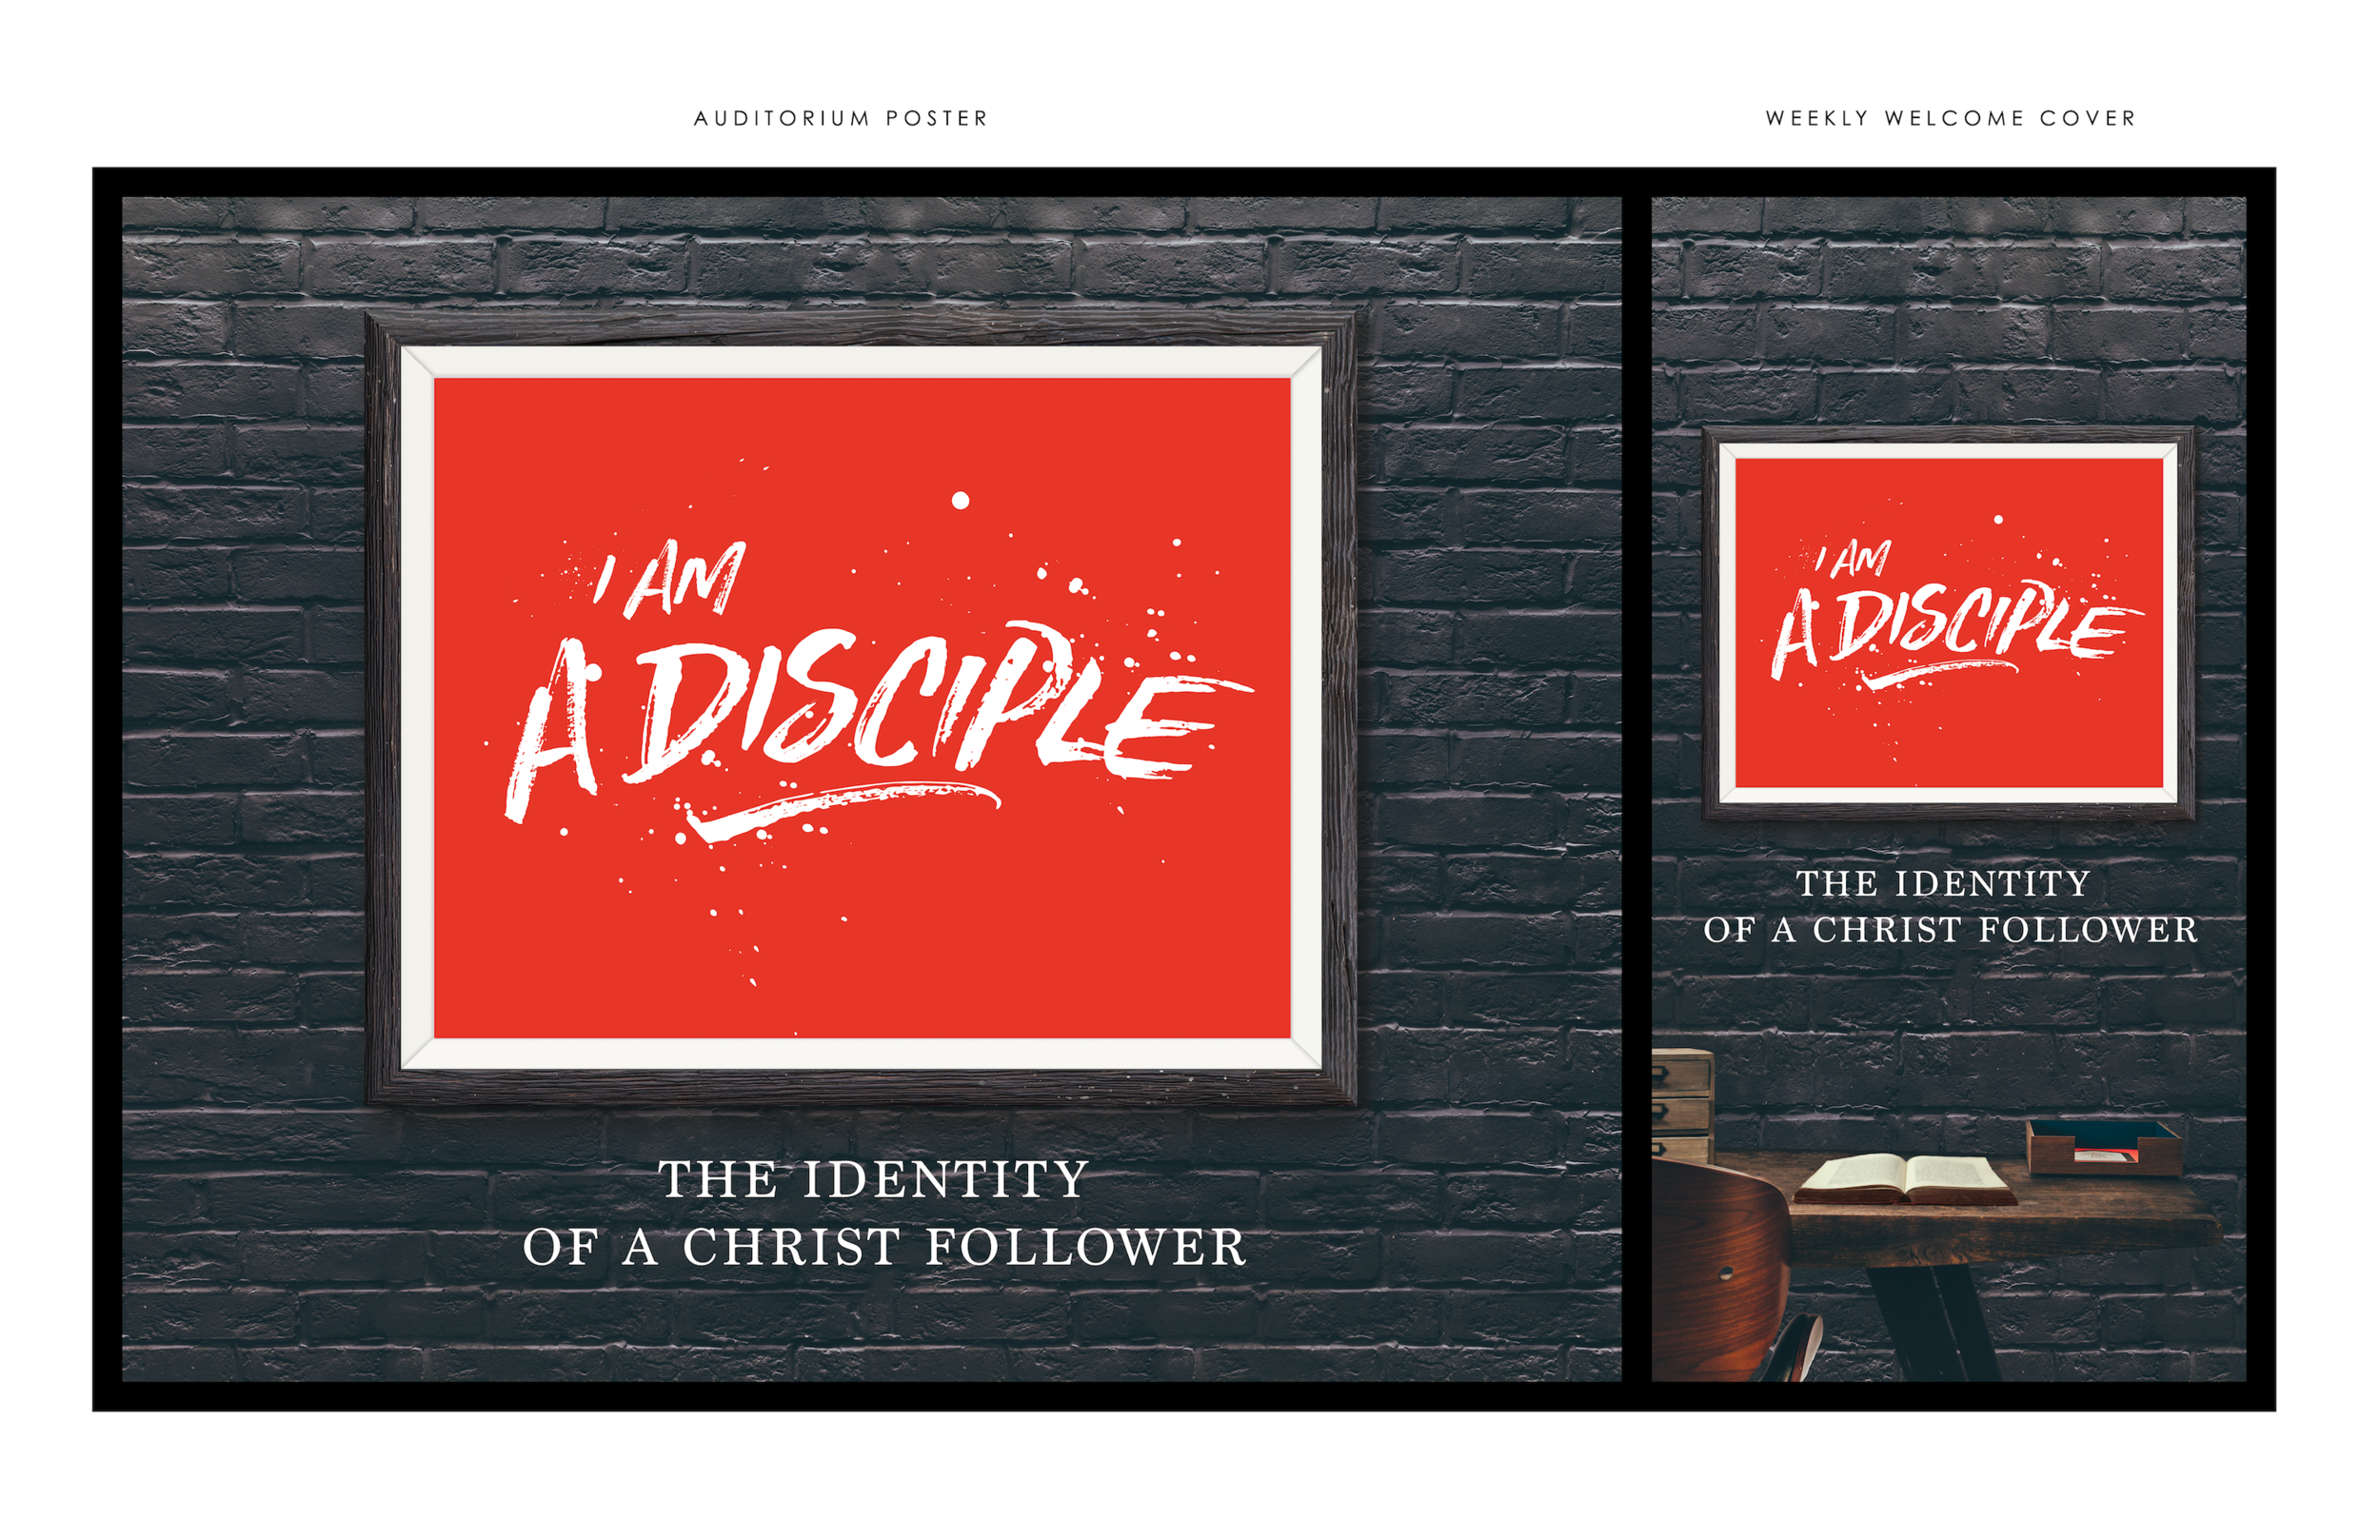 Cover art mockup created for a series at church